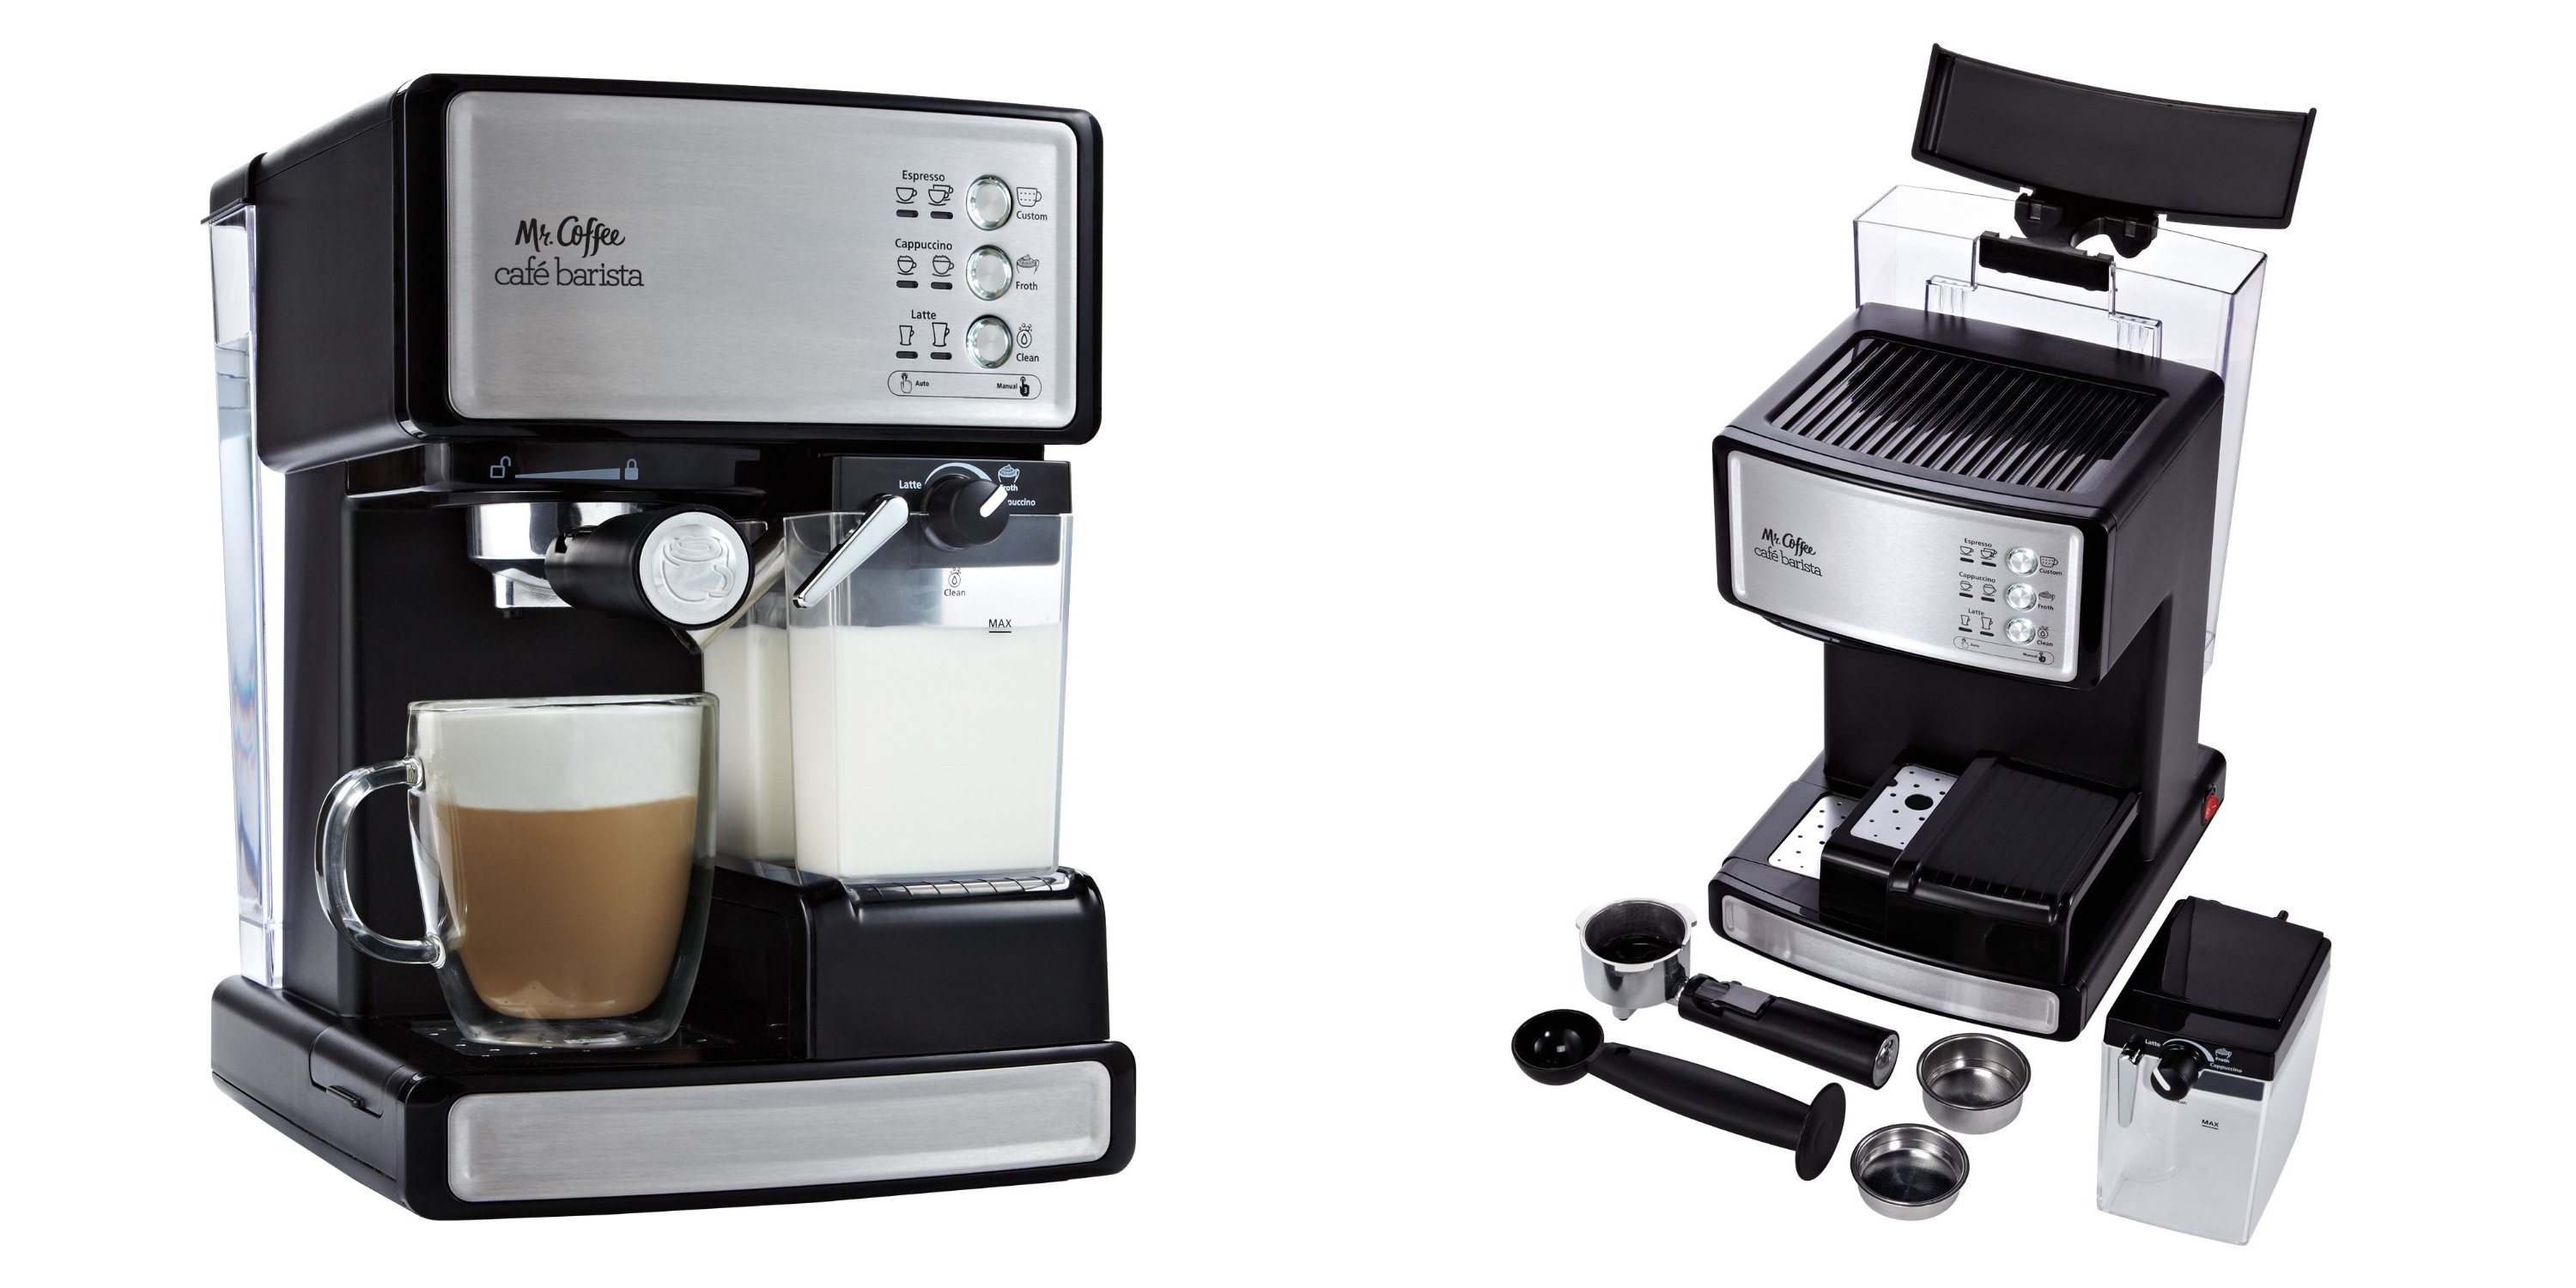 Mr.Coffee-espresso-frother-deal-discount